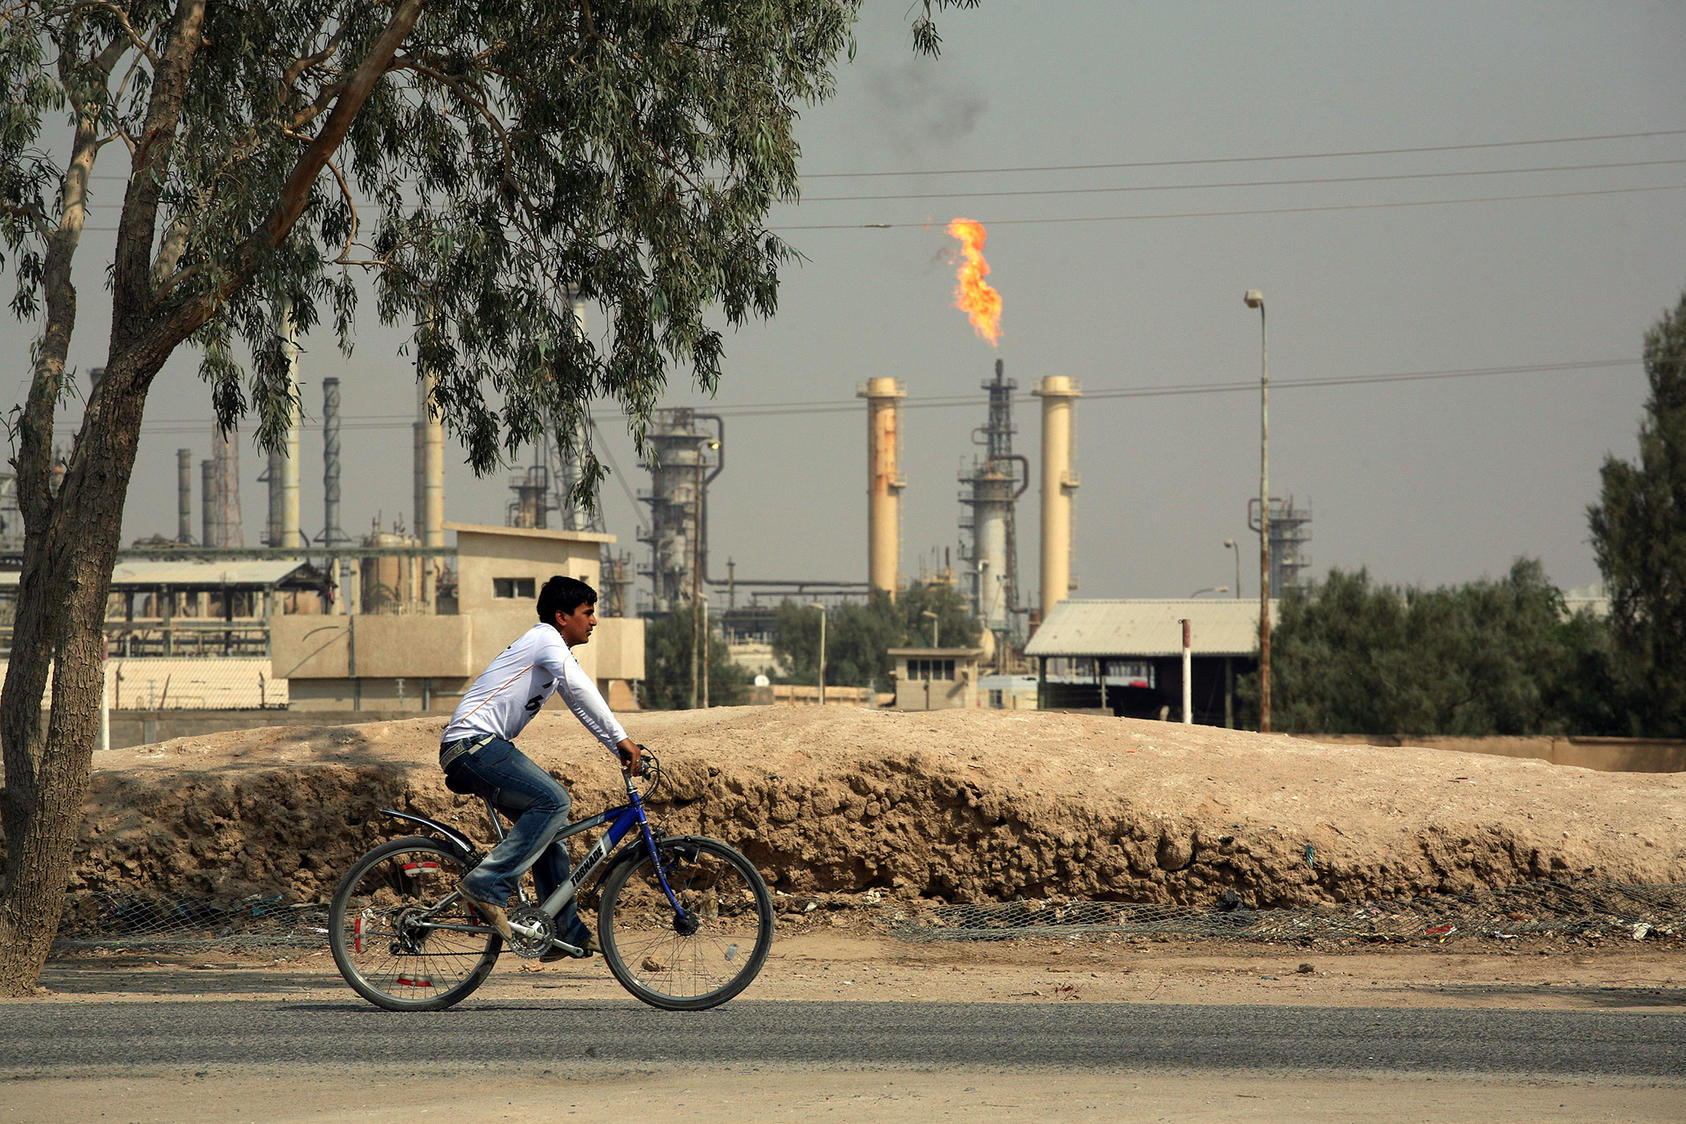 A bicyclist rides past a refinery near Basra, Iraq, on Oct. 27, 2009. (Joao Silva/The New York Times)